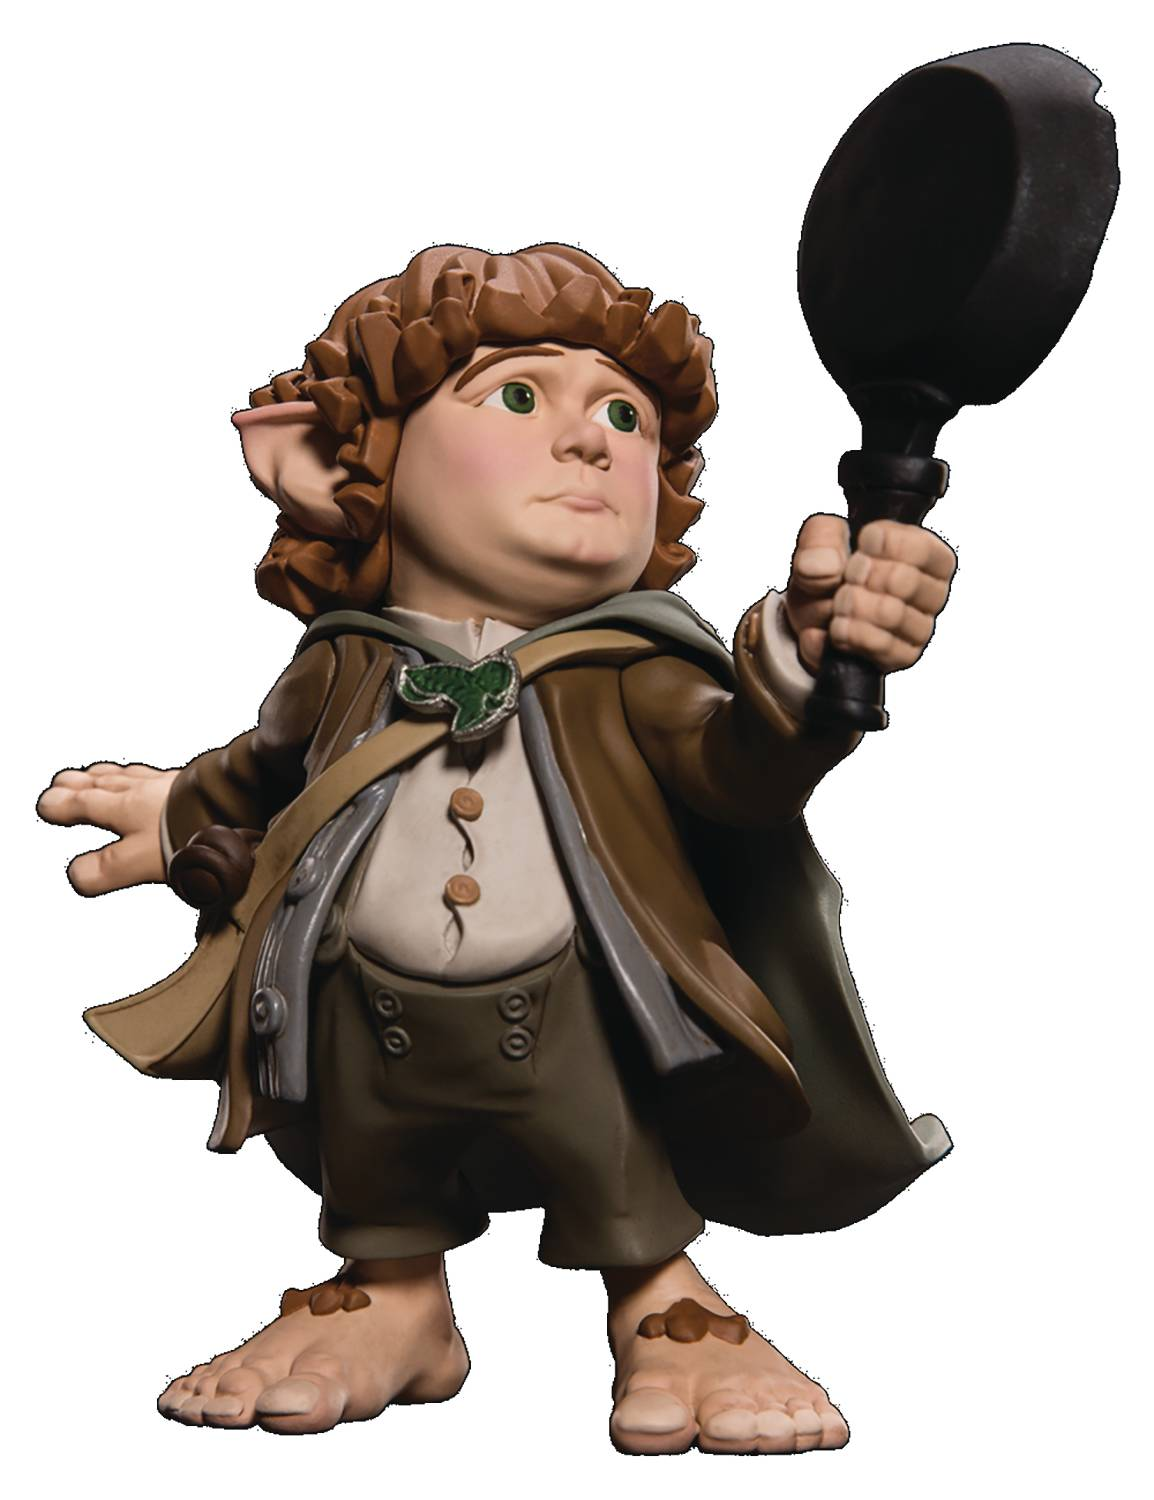 MINI EPICS LOTR SAMWISE VINYL FIG